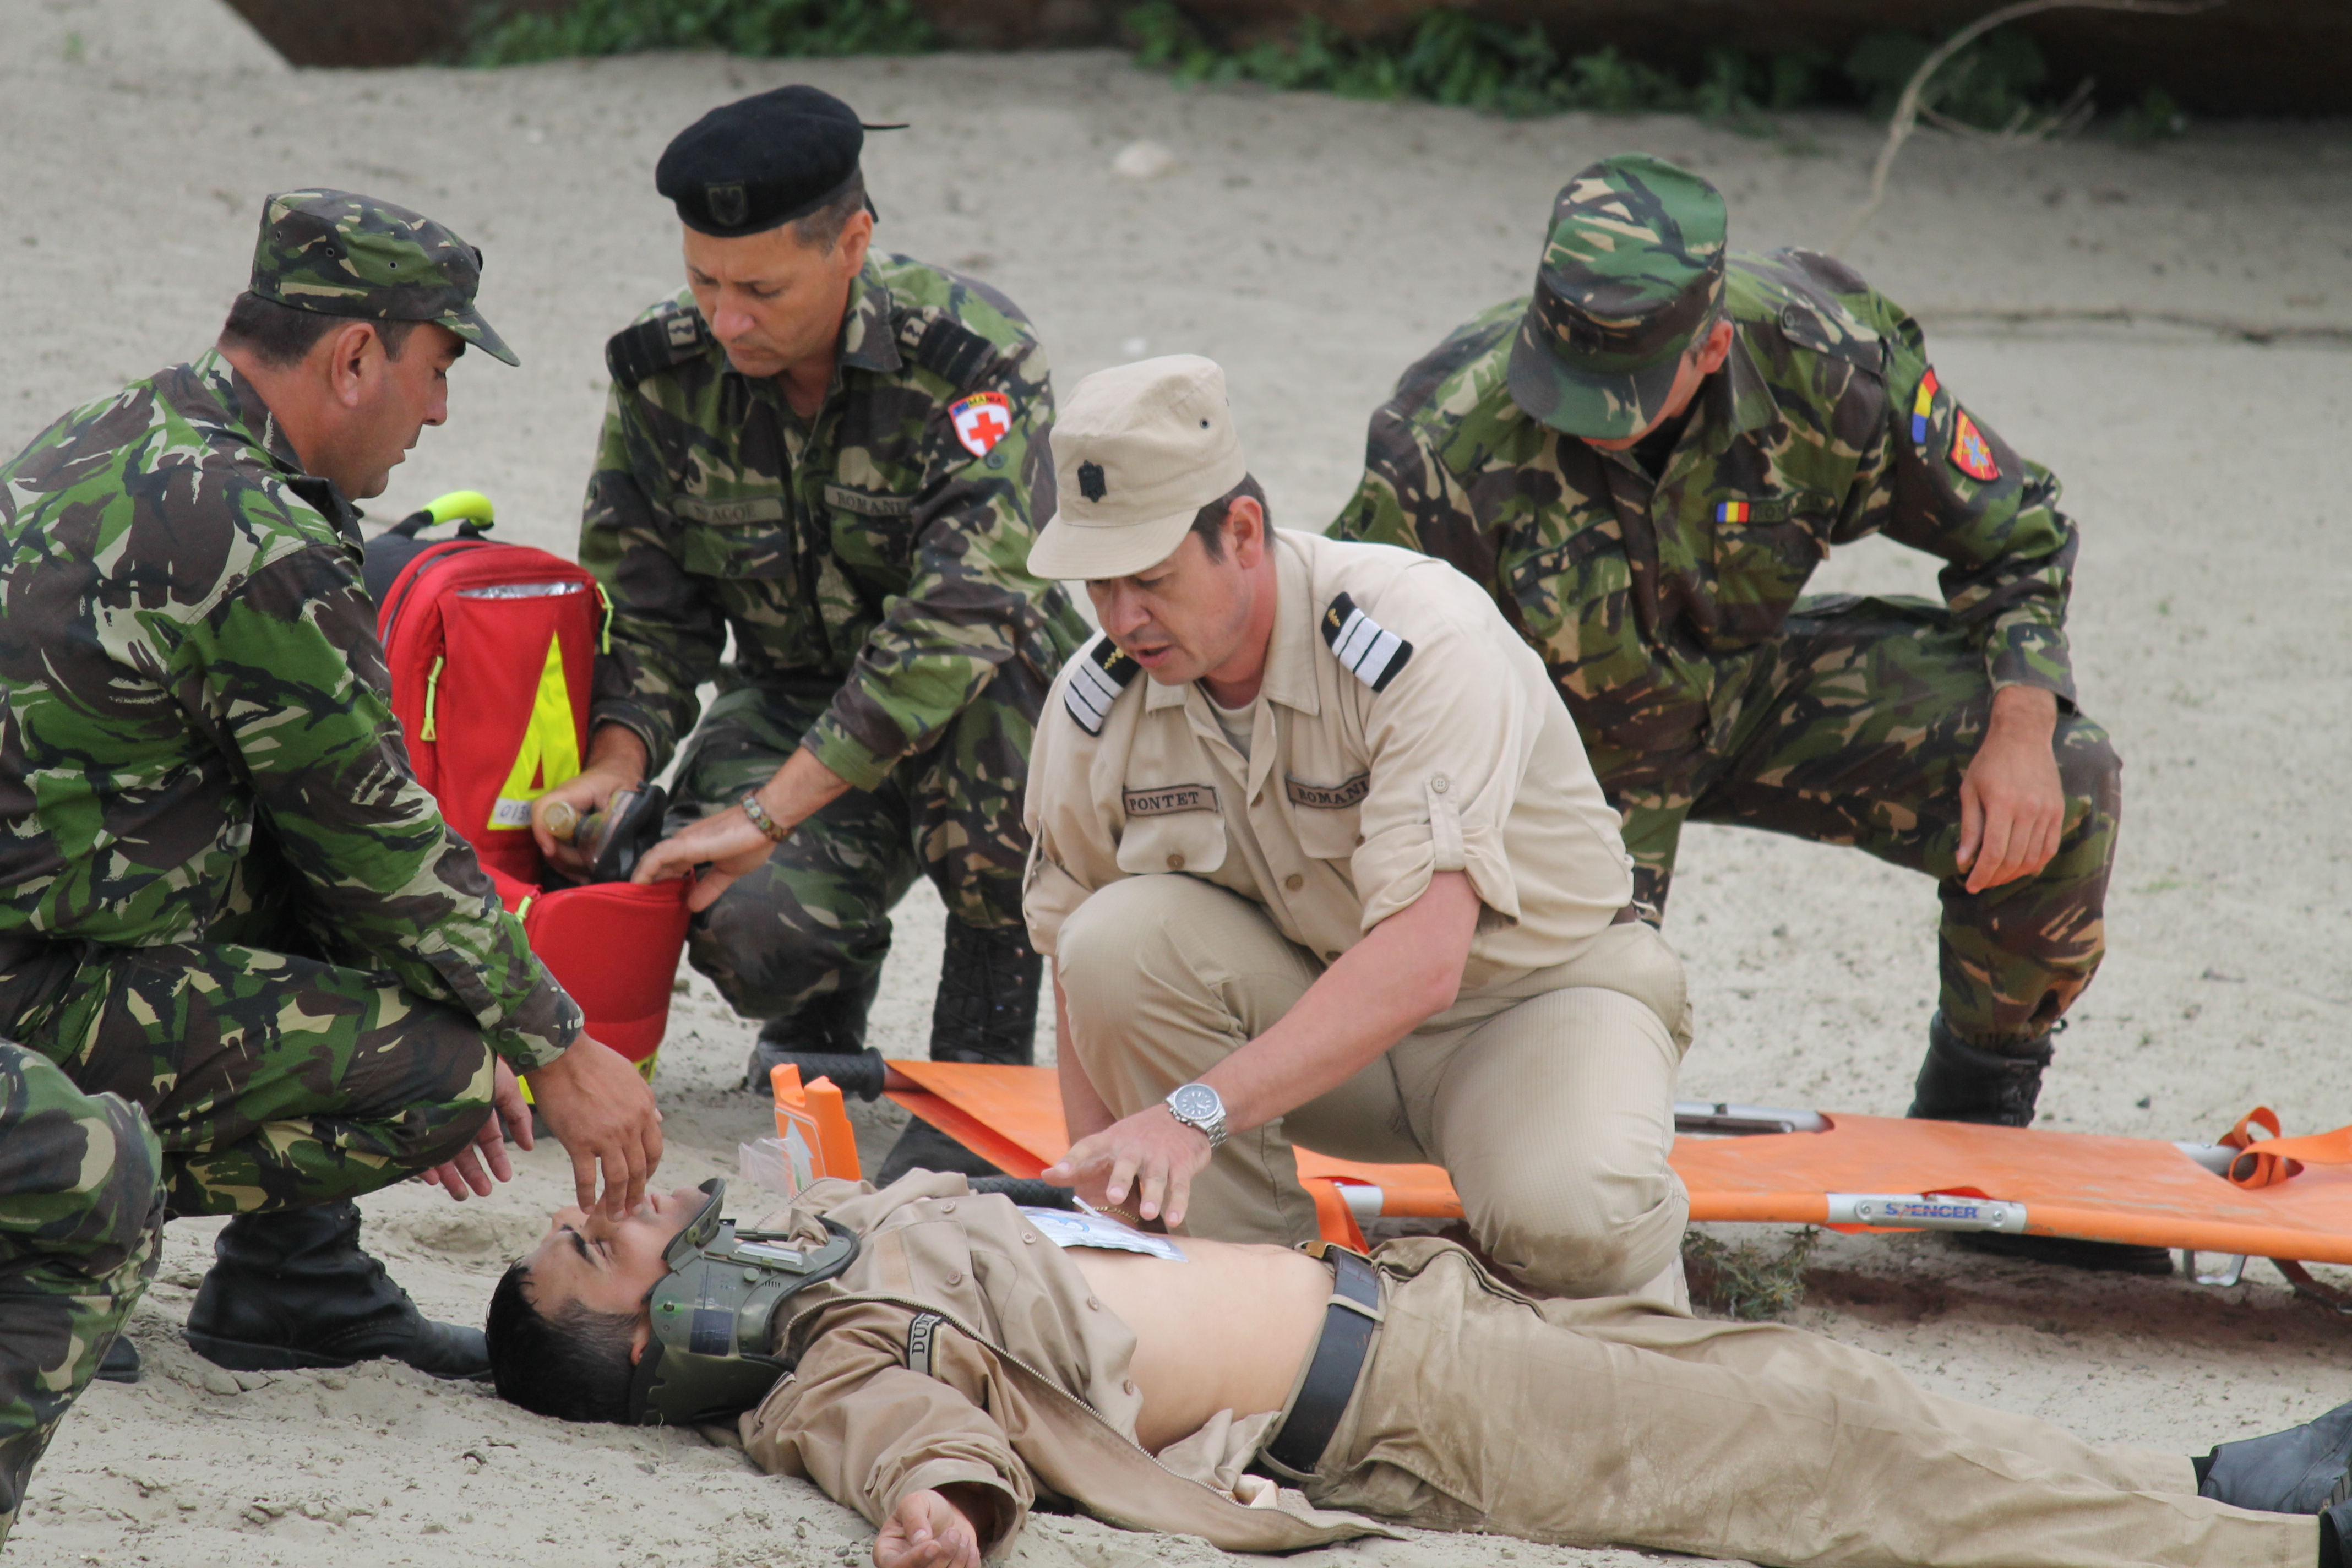 Romanian medics practice responding to an injured sailor from one of the navy ships in the river. A raft rescued the sailor, simulating an injury and brought him to shore, where he was treated and whisked away in a medical vehicle. The river crossing exercise also simulated a mass casualty event and corresponded with a mass casualty exercise at nearby Mihail Kogalniceanu Air Base, where the personnel feigned injuries to allow military medics from Romania, the U.S. and the Balkan Medical Task Force to practice high-level triage skills. (Jen Judson/Staff)